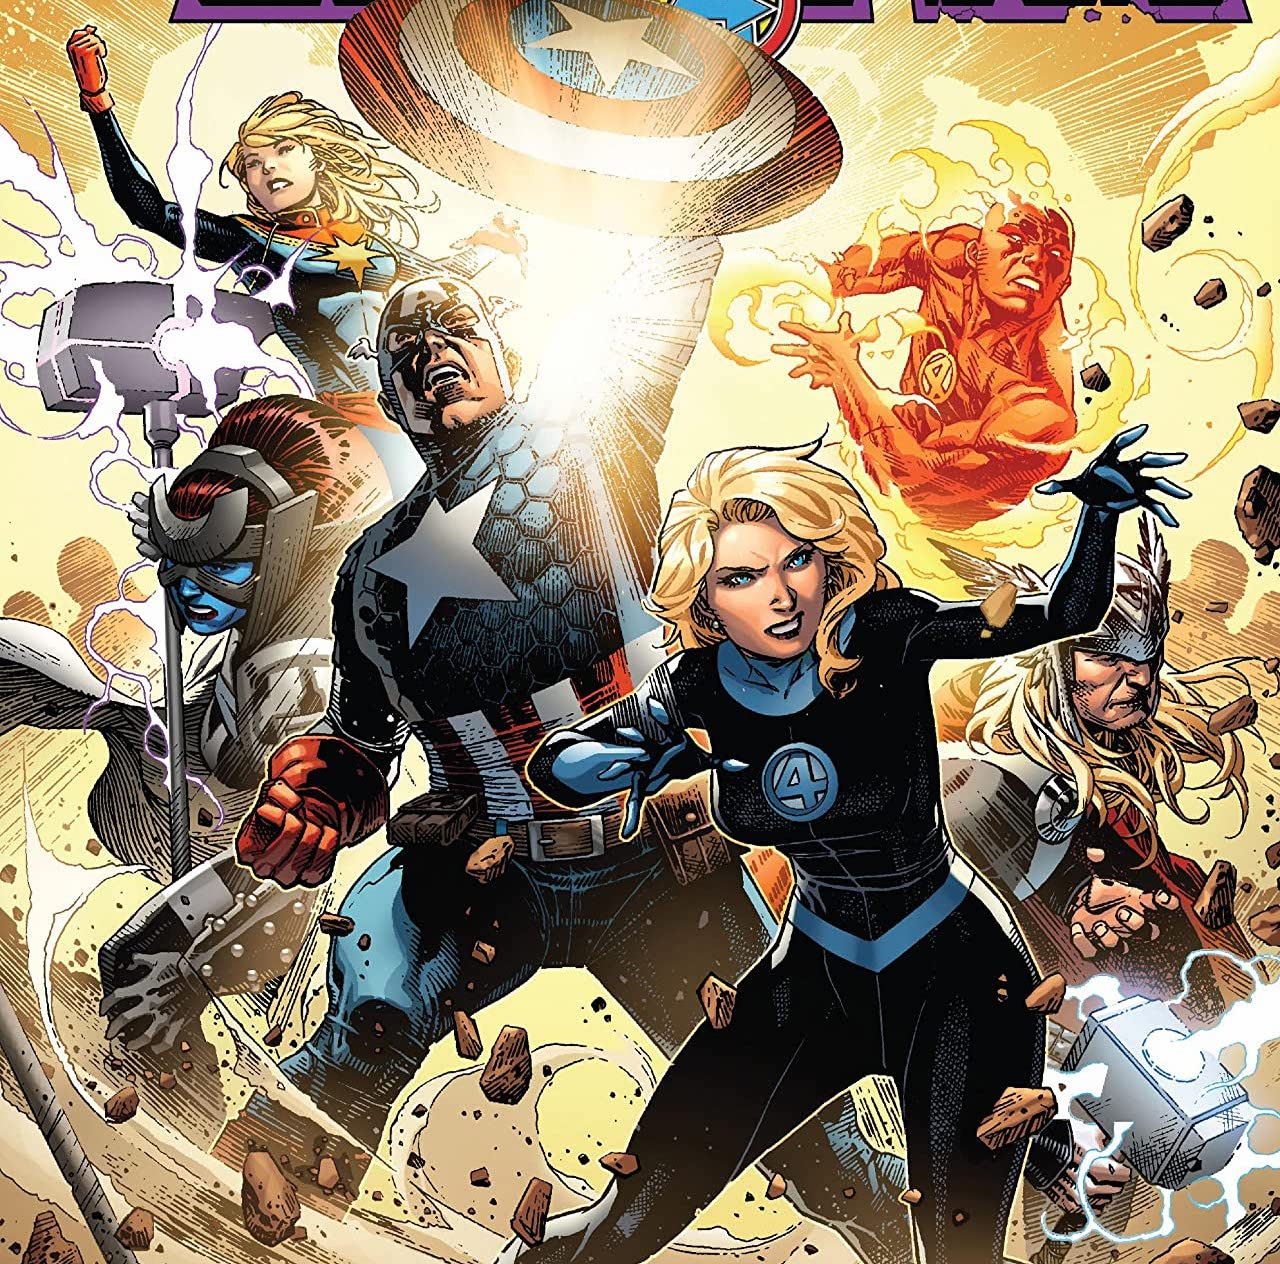 In Empyre #2, the Avengers, Fantastic Four, and Captain Marvel play key parts!